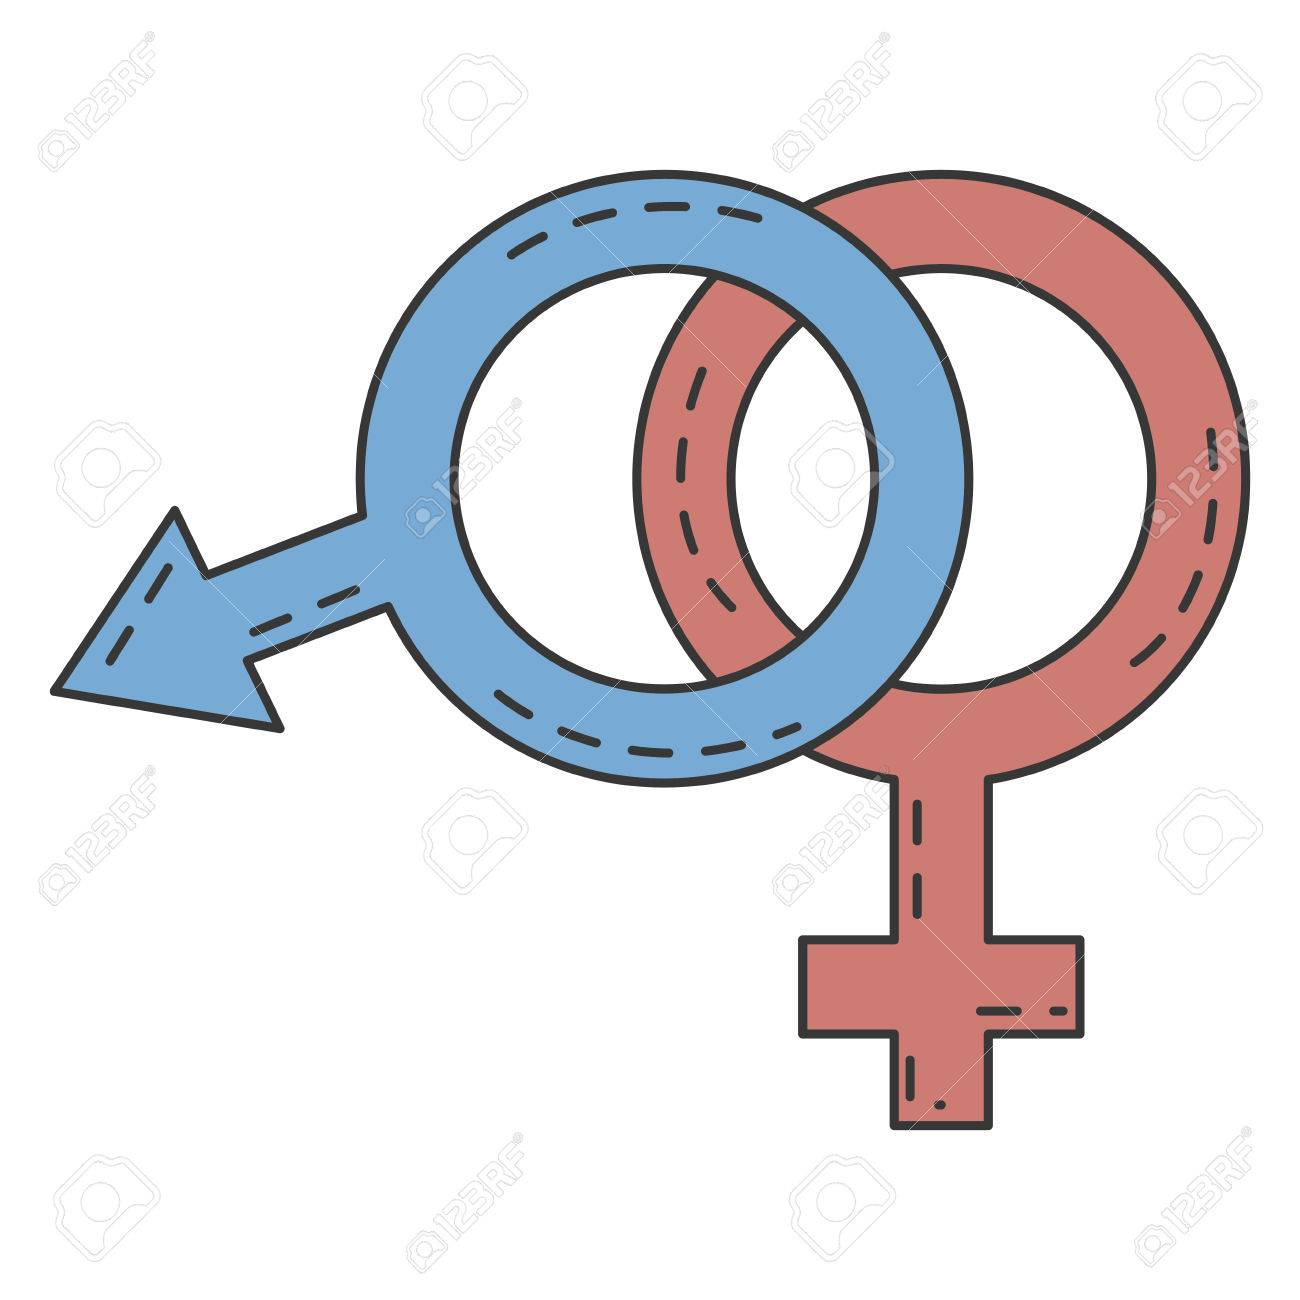 Male And Female Symbol Vector Illustration Design Royalty Free